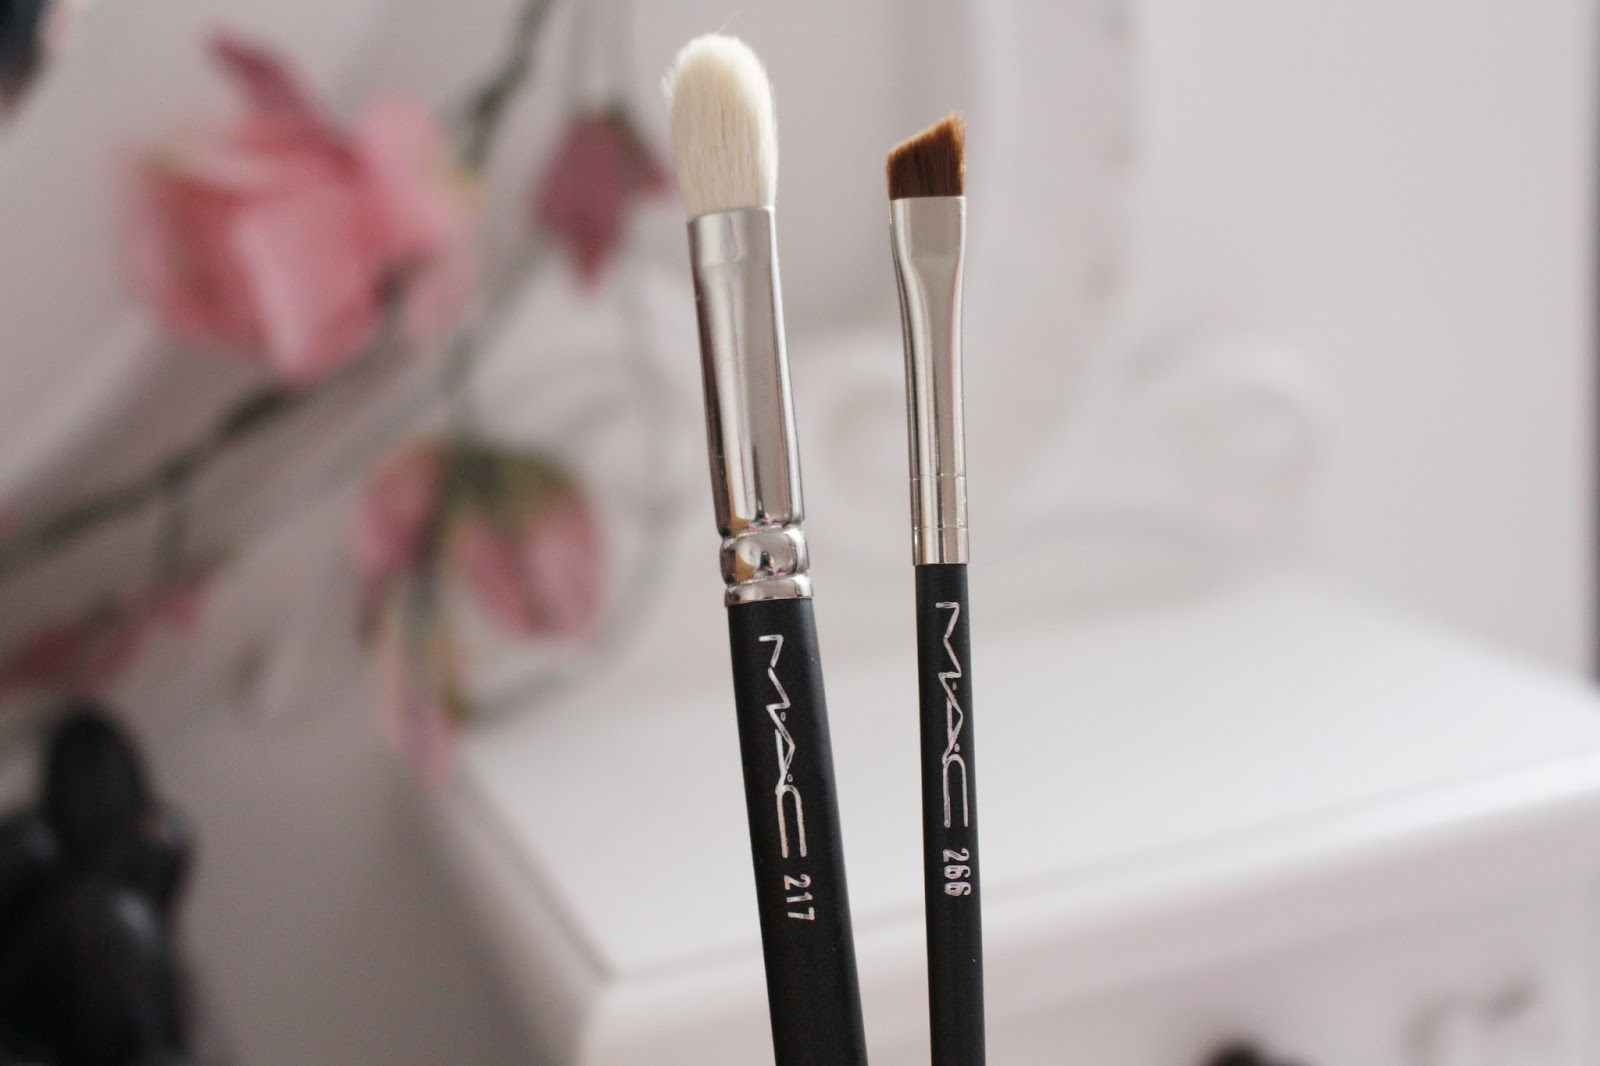 MAC Cosmetics Brushes in 217 and 266